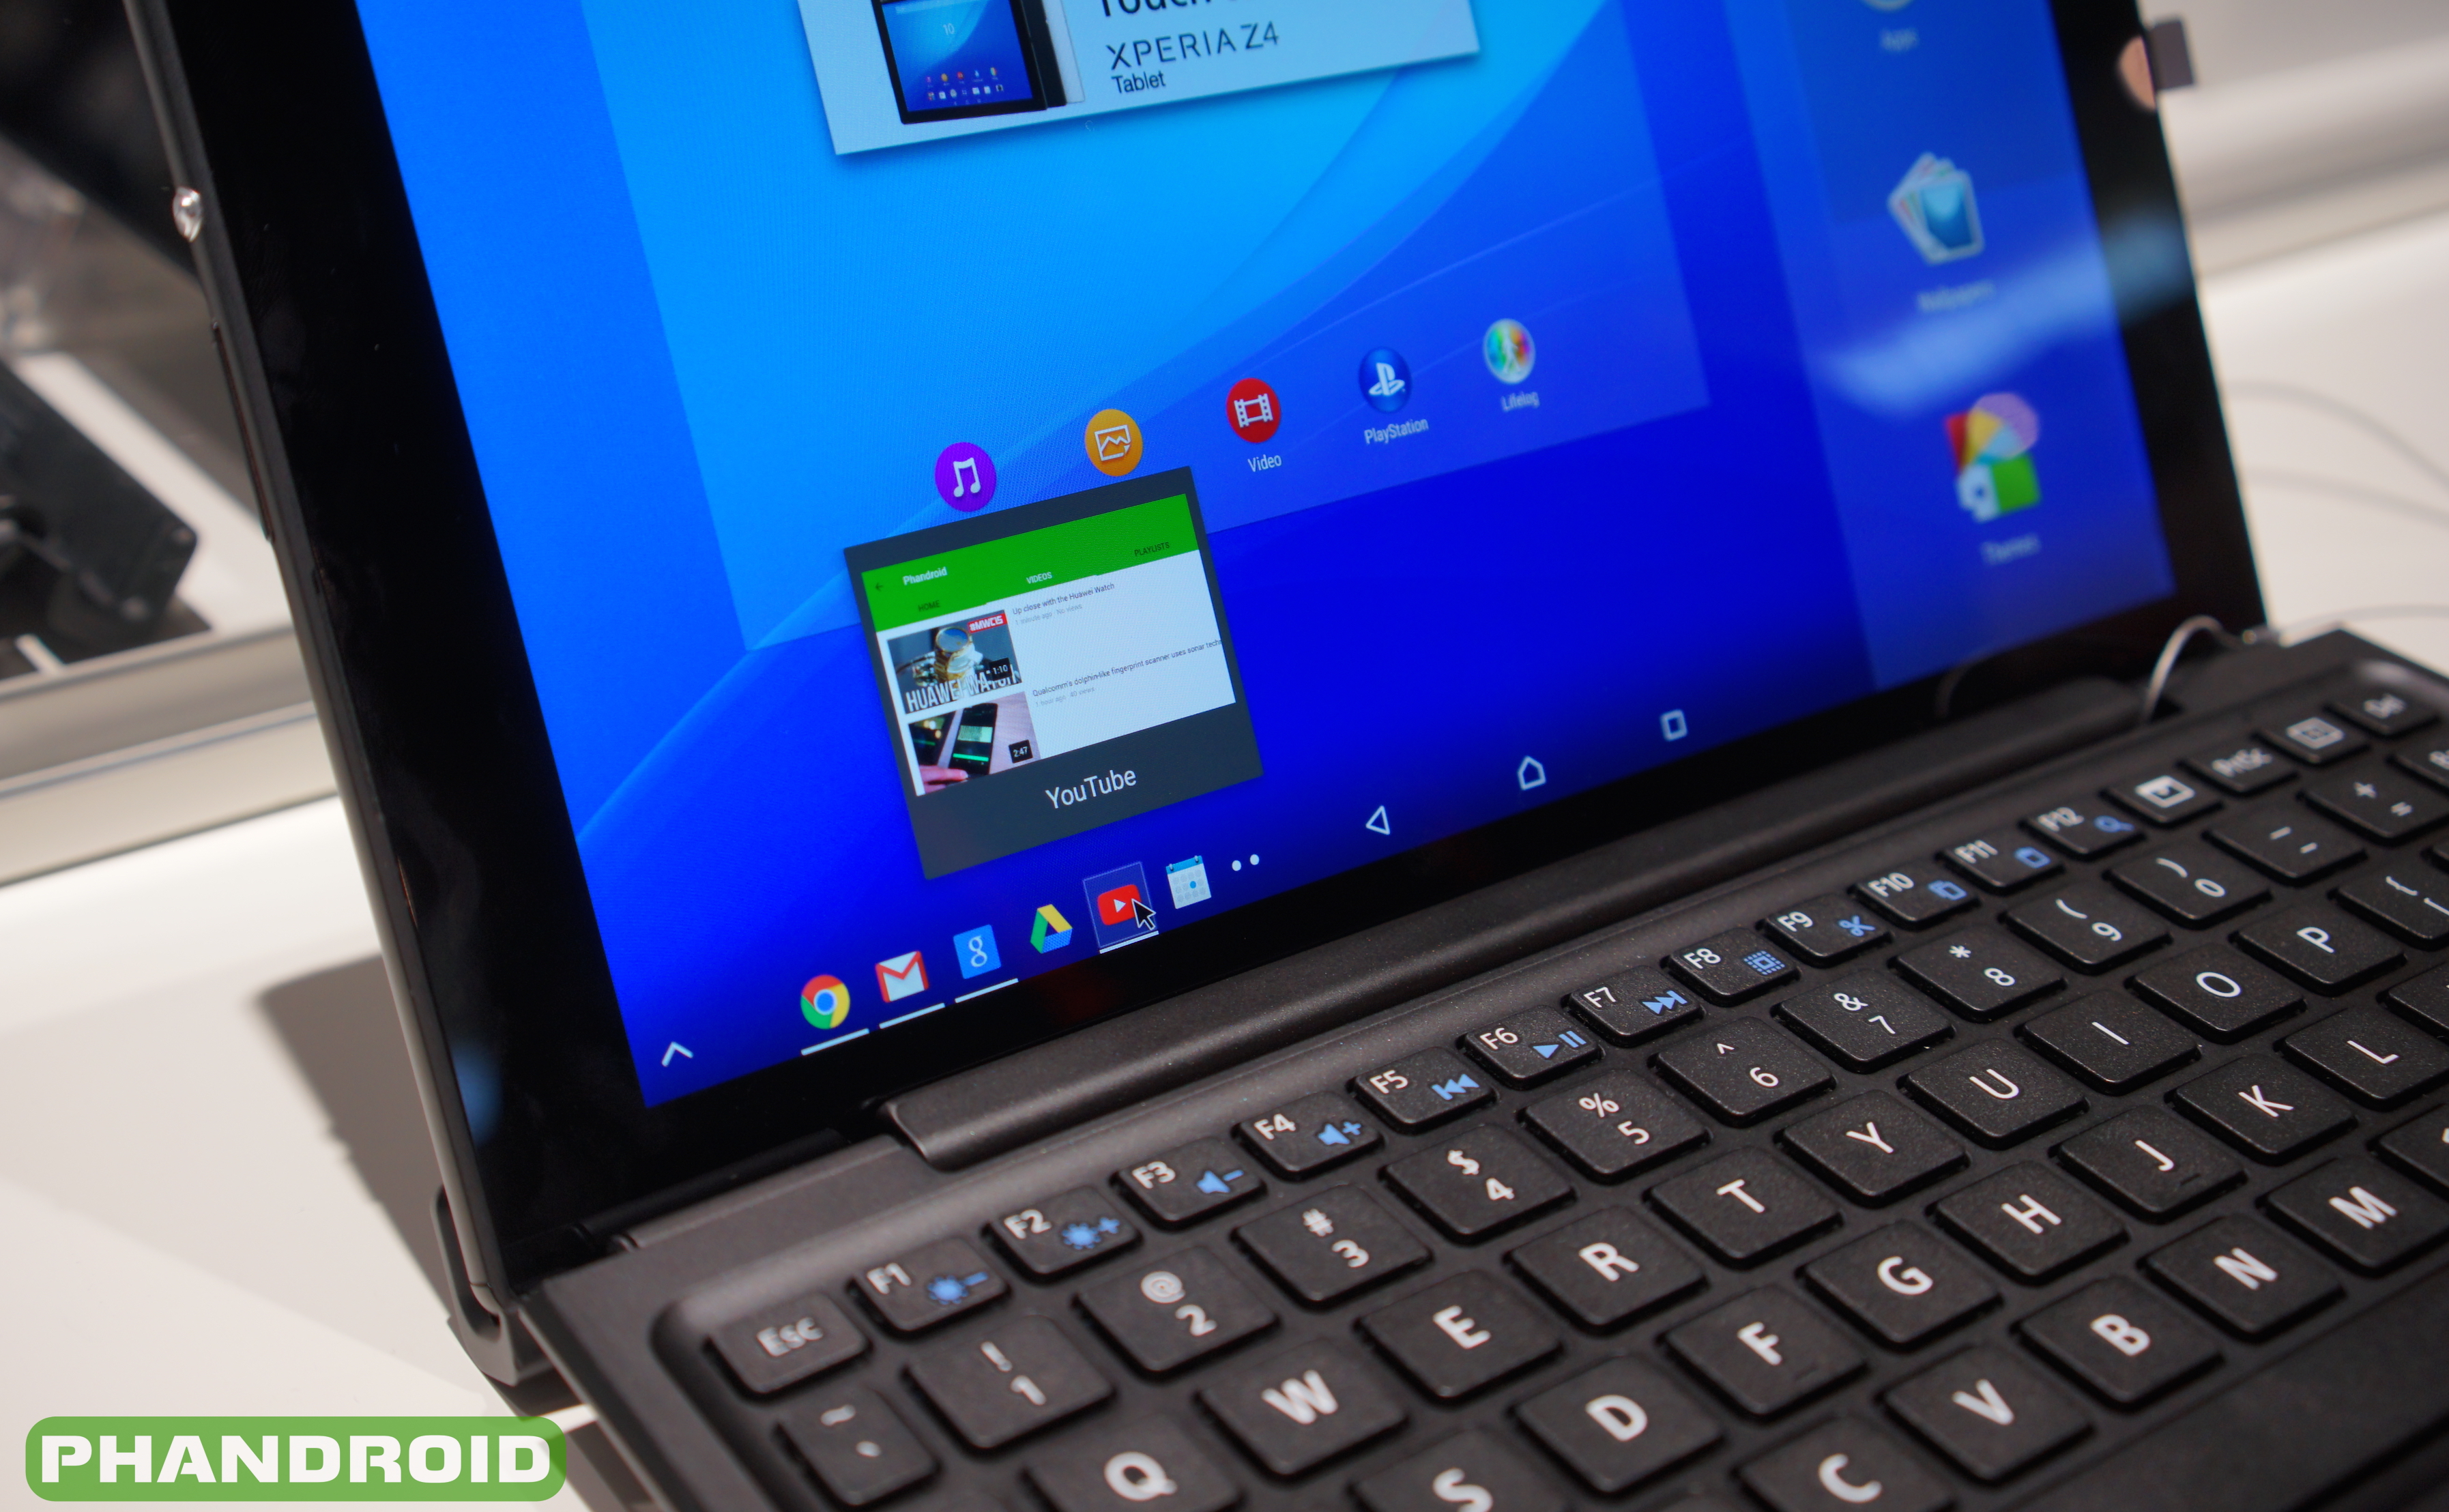 Handson: Sony Xperia Z4 Tablet [VIDEO]